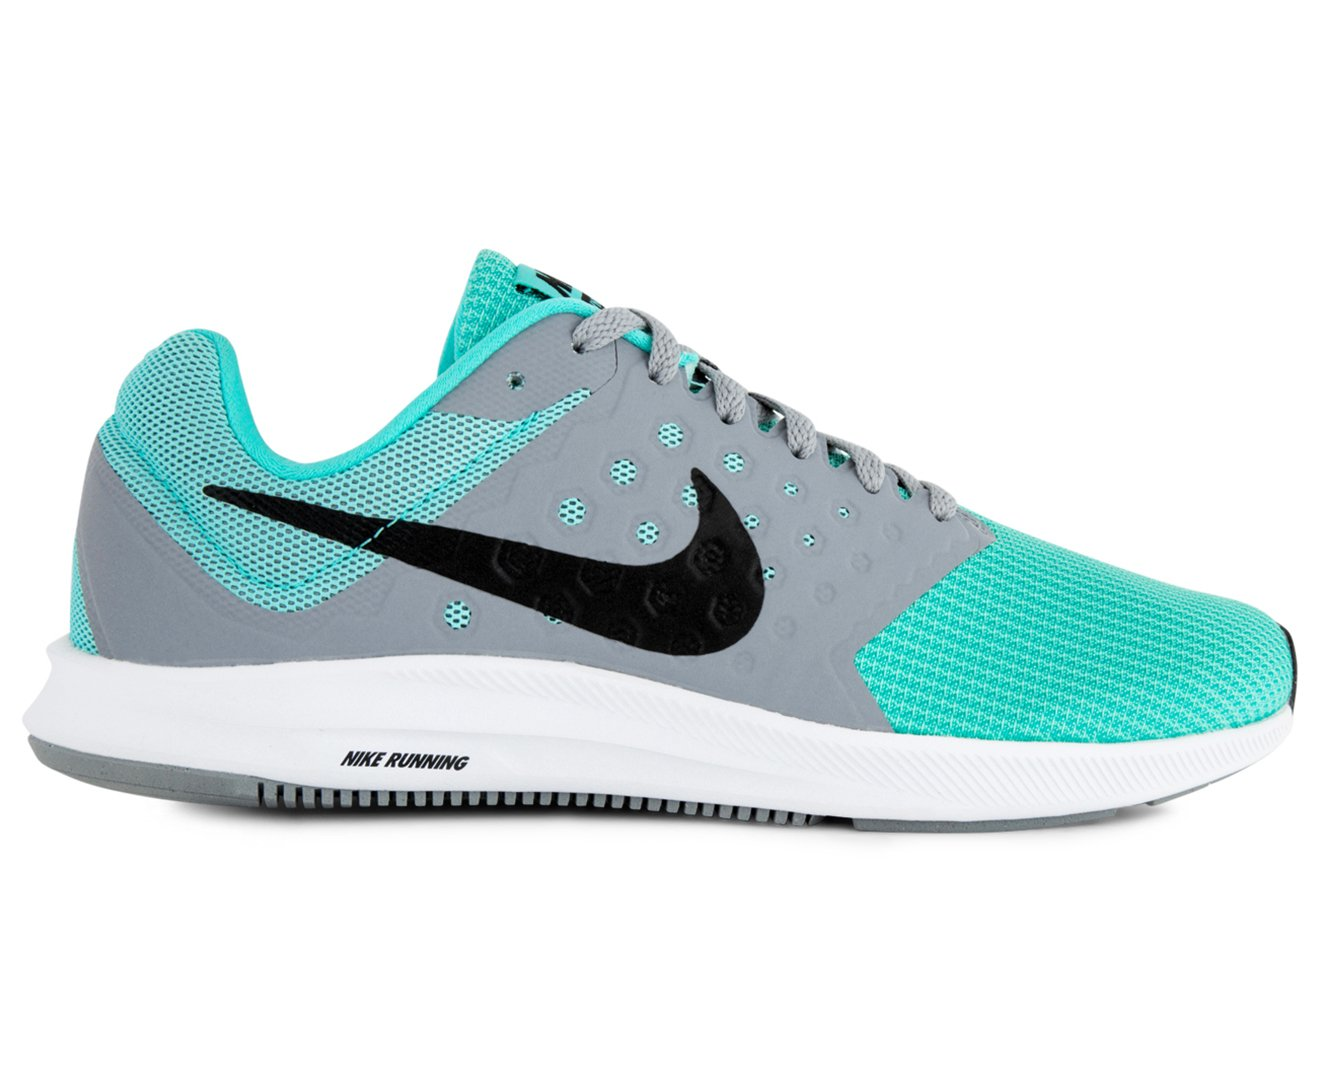 34f1a1259 Galleon - Nike Womens WMNS Downshifter 7